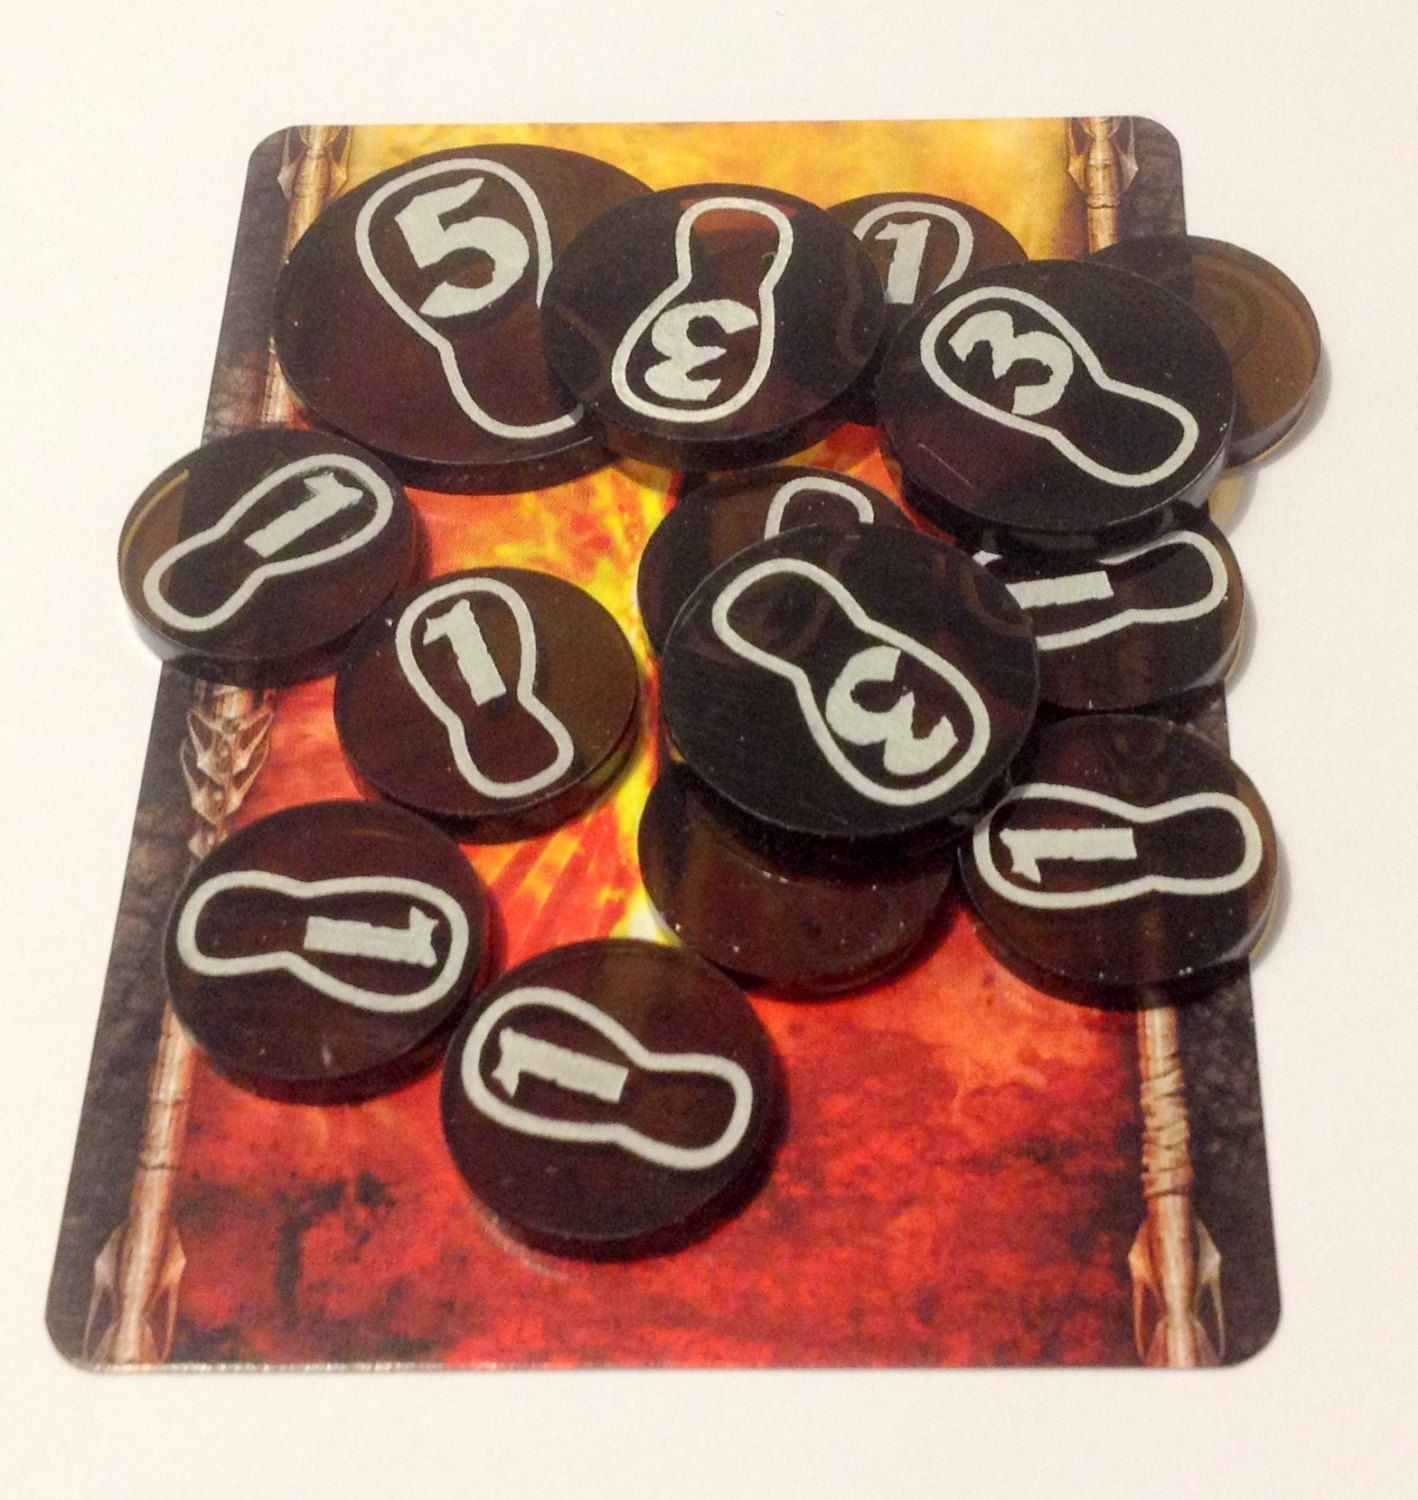 The Lord Of The Ring Lcg Progress Tokens Set